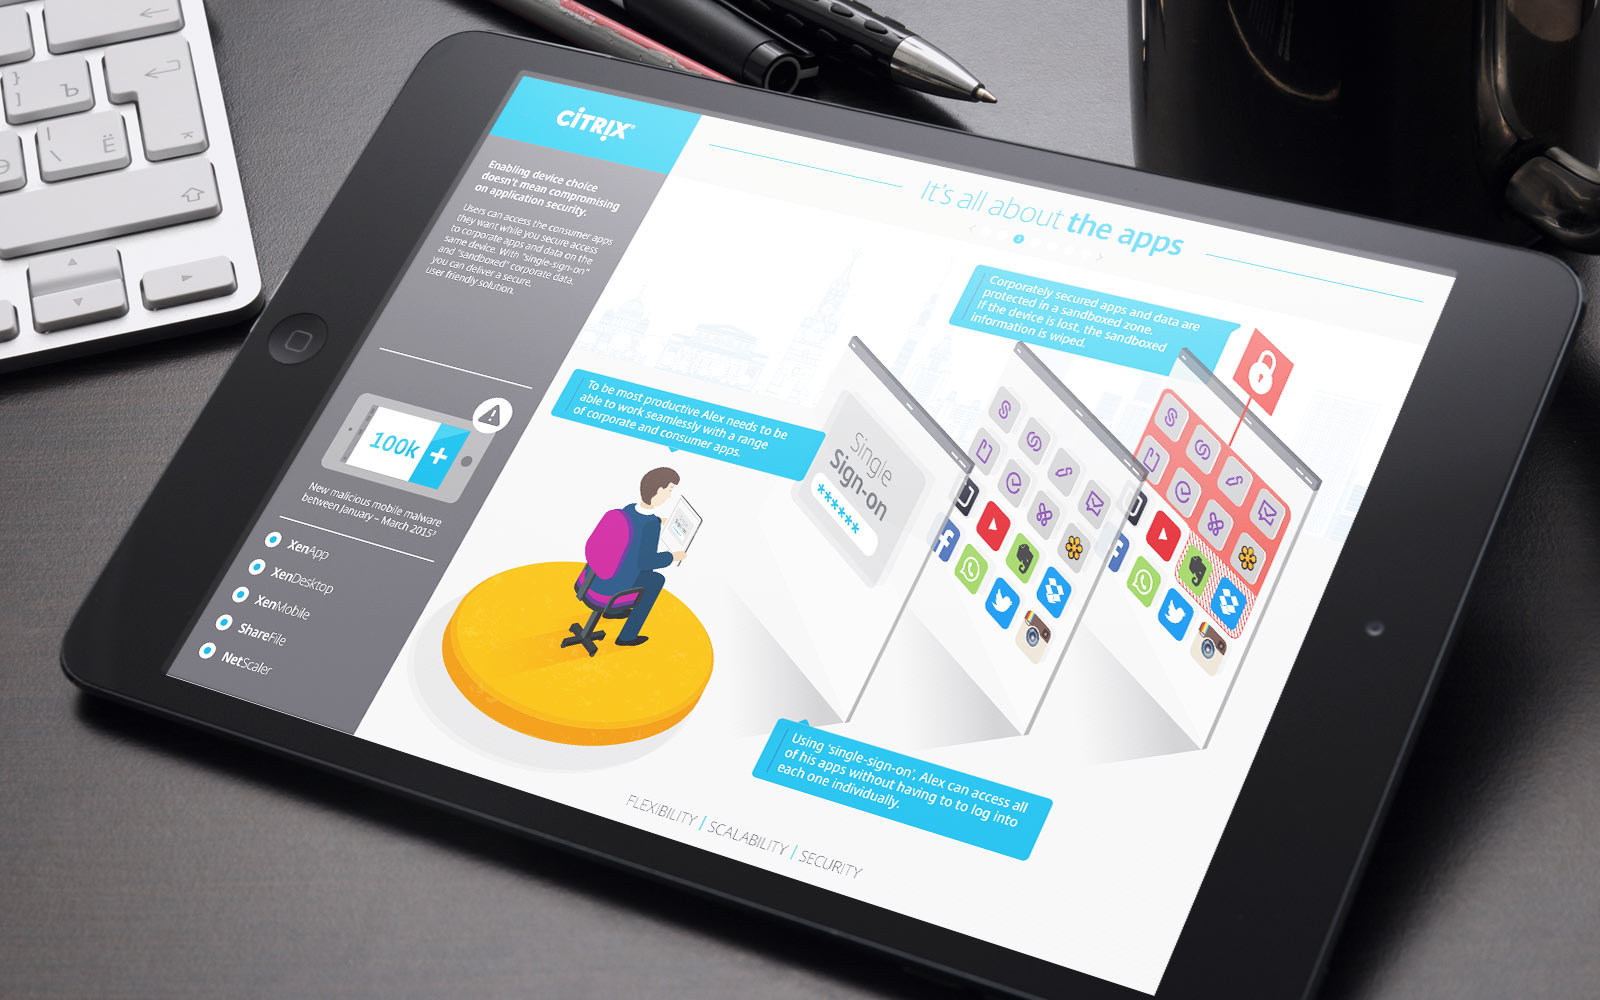 Black iPad displaying Citrix interactive touchscreen sales enablement tool showing illustration of person using Citrix app